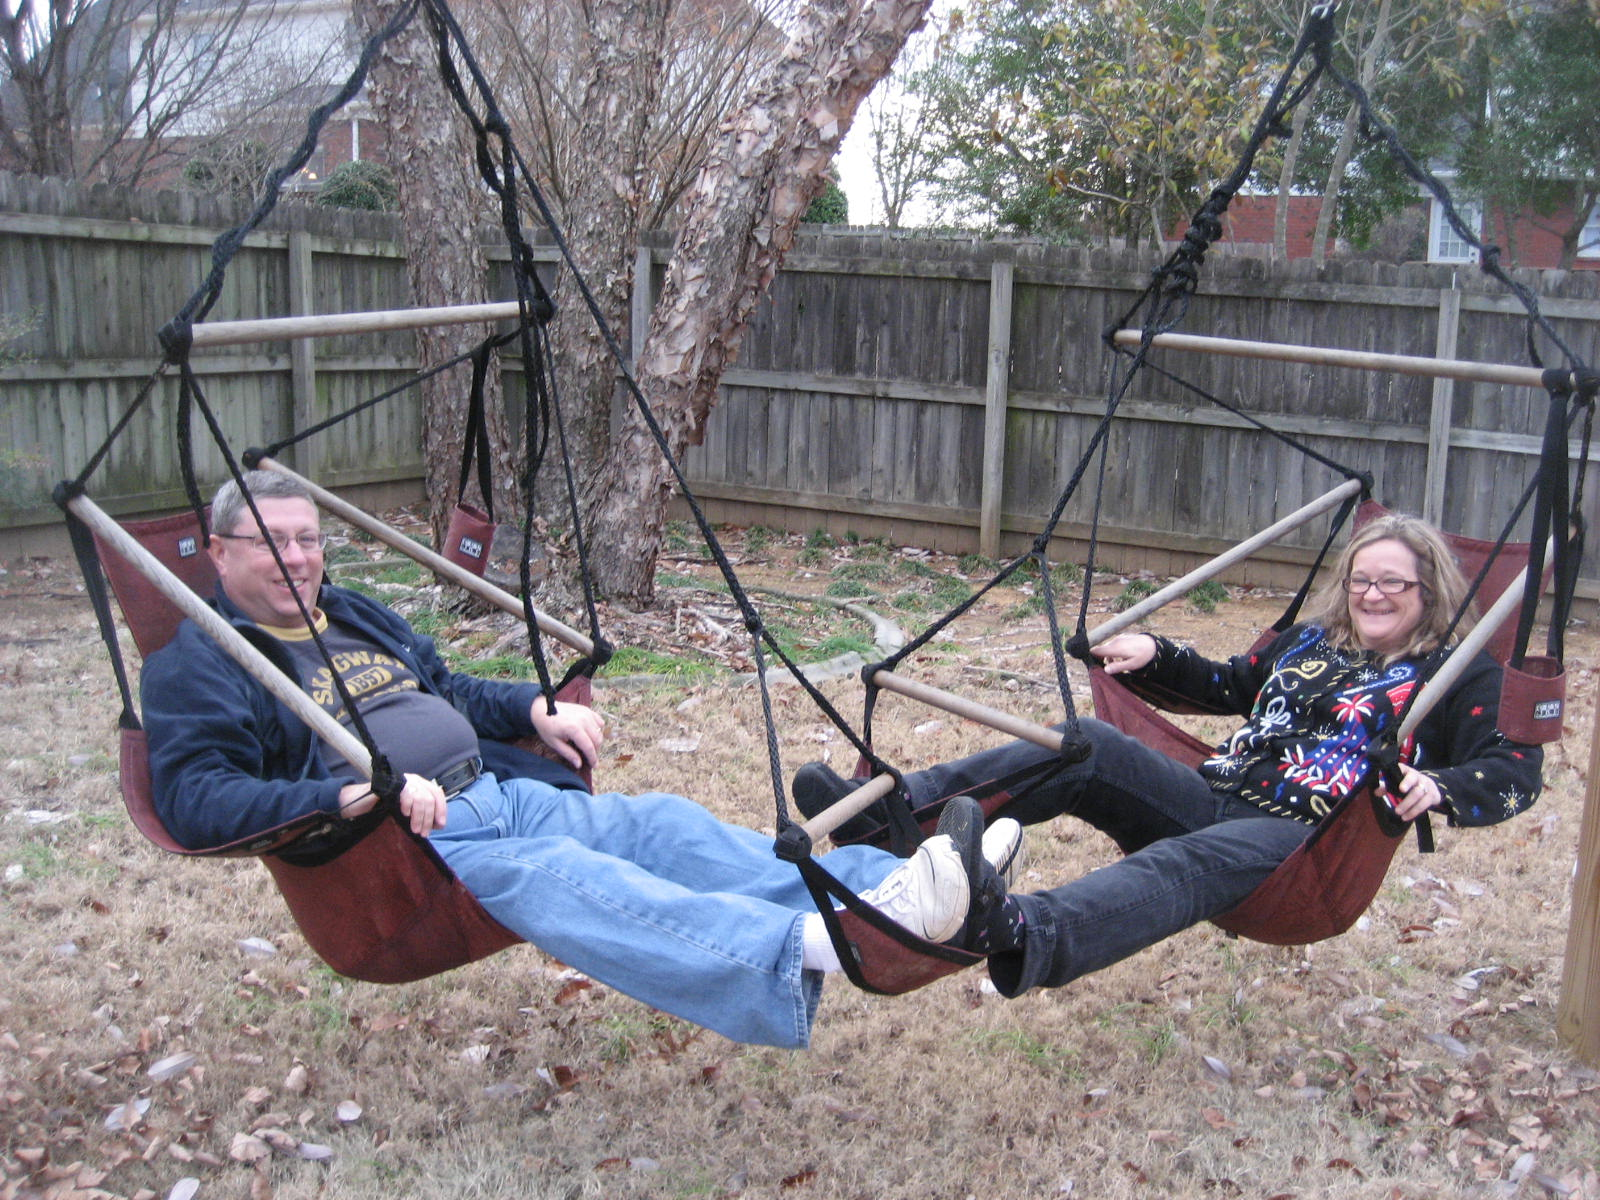 Green Thoughts: Sky Chair Fun